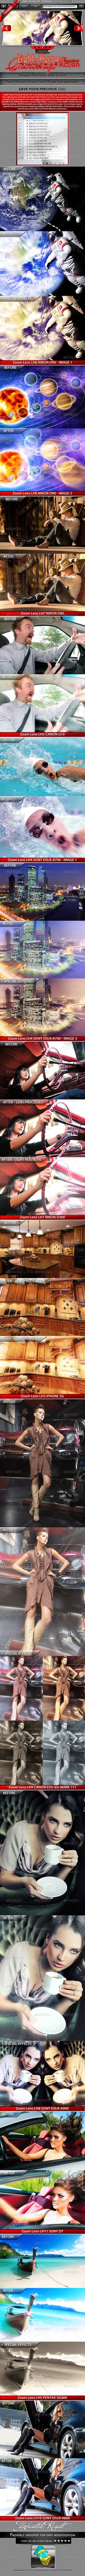 Light-House Premium Action Set  #GraphicRiver         PACKAGE DETAILS :   Package name: Light-House Premium Action Set  Software version: Photoshop CS5   Copyright: Oct. 4, 2012  Author: Charles Brown  Items: – ATN file      Complexity: Well-labeled 'ACTION' operation and easy to modify to suit your need. Renders 2 parts: FINAL IMAGE and COMPRISING ELEMENTS (TOTAL EDITABLE EFFECTS ). This action will duplicate the main document before rendering the image effect thereby leaving your main…